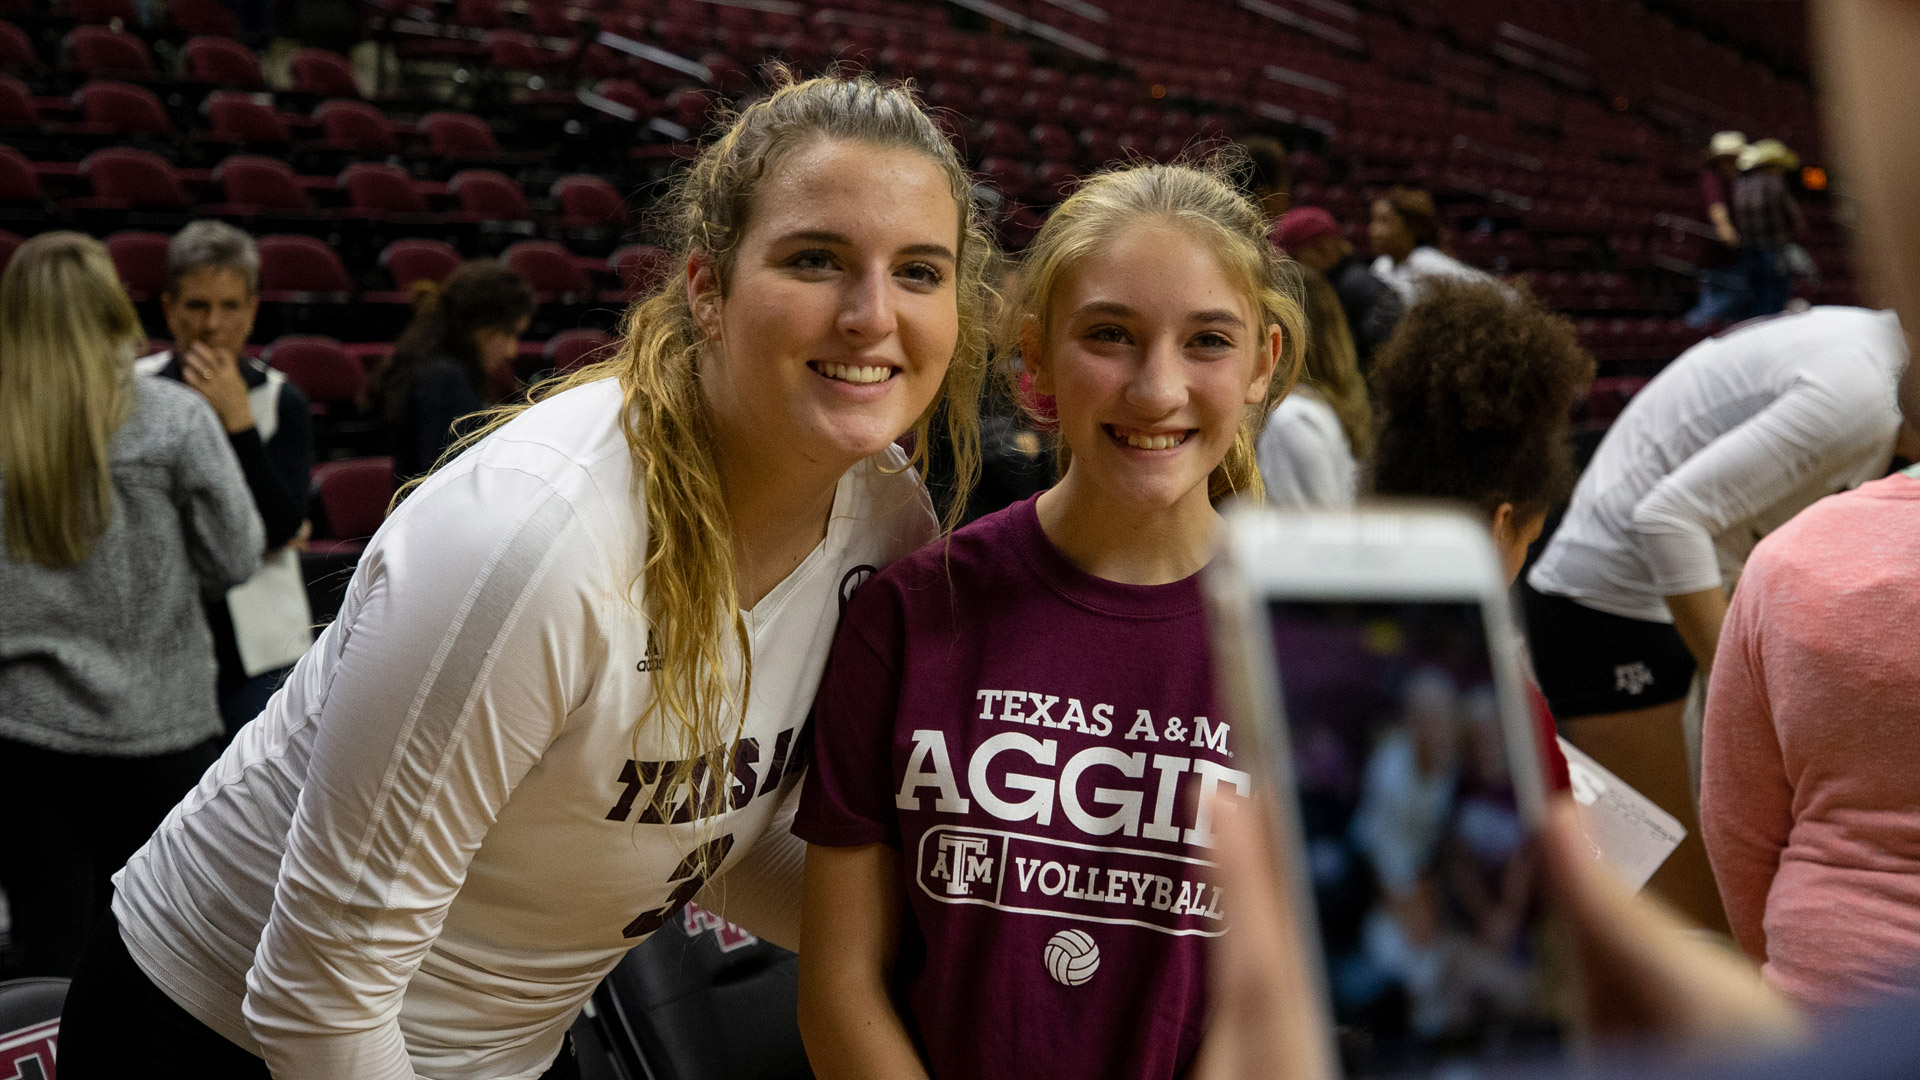 Brookah Palmer - Volleyball - Texas A&M Athletics - Home of the 12th Man